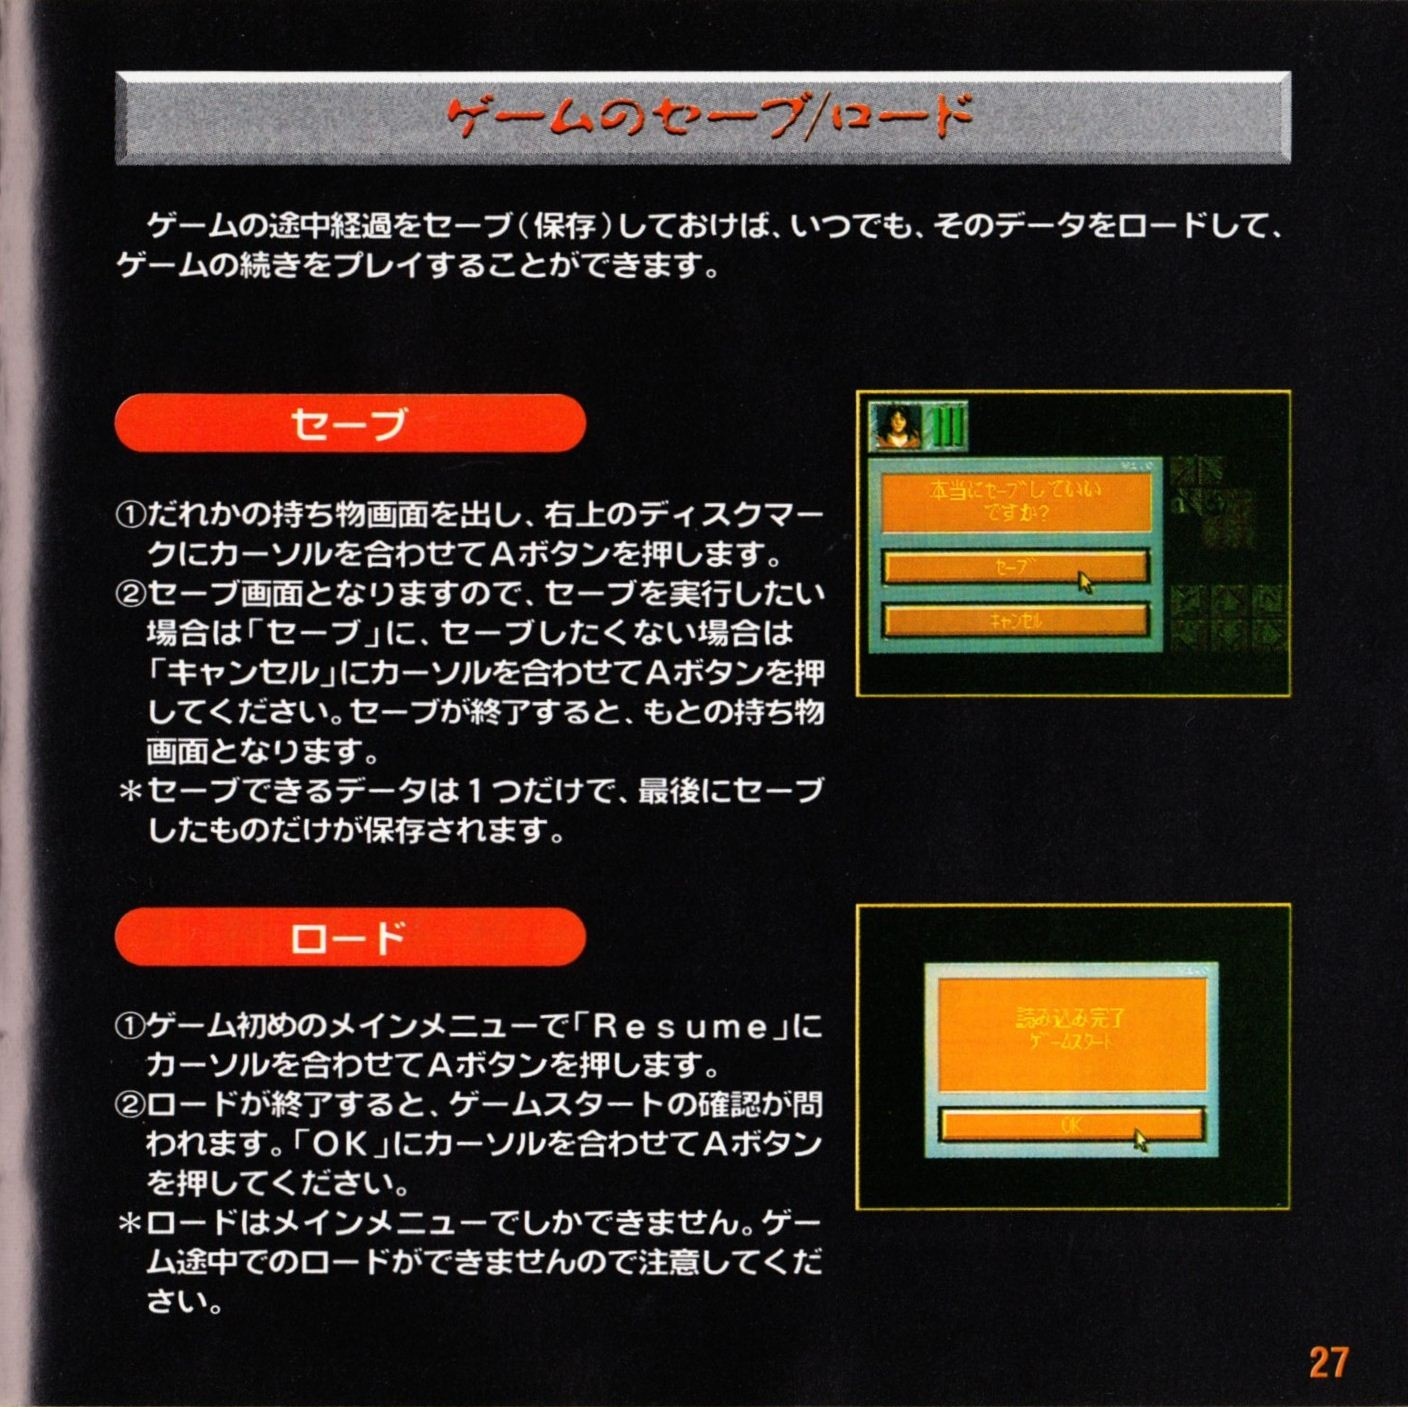 Game - Dungeon Master II - JP - Mega CD - Booklet - Page 029 - Scan